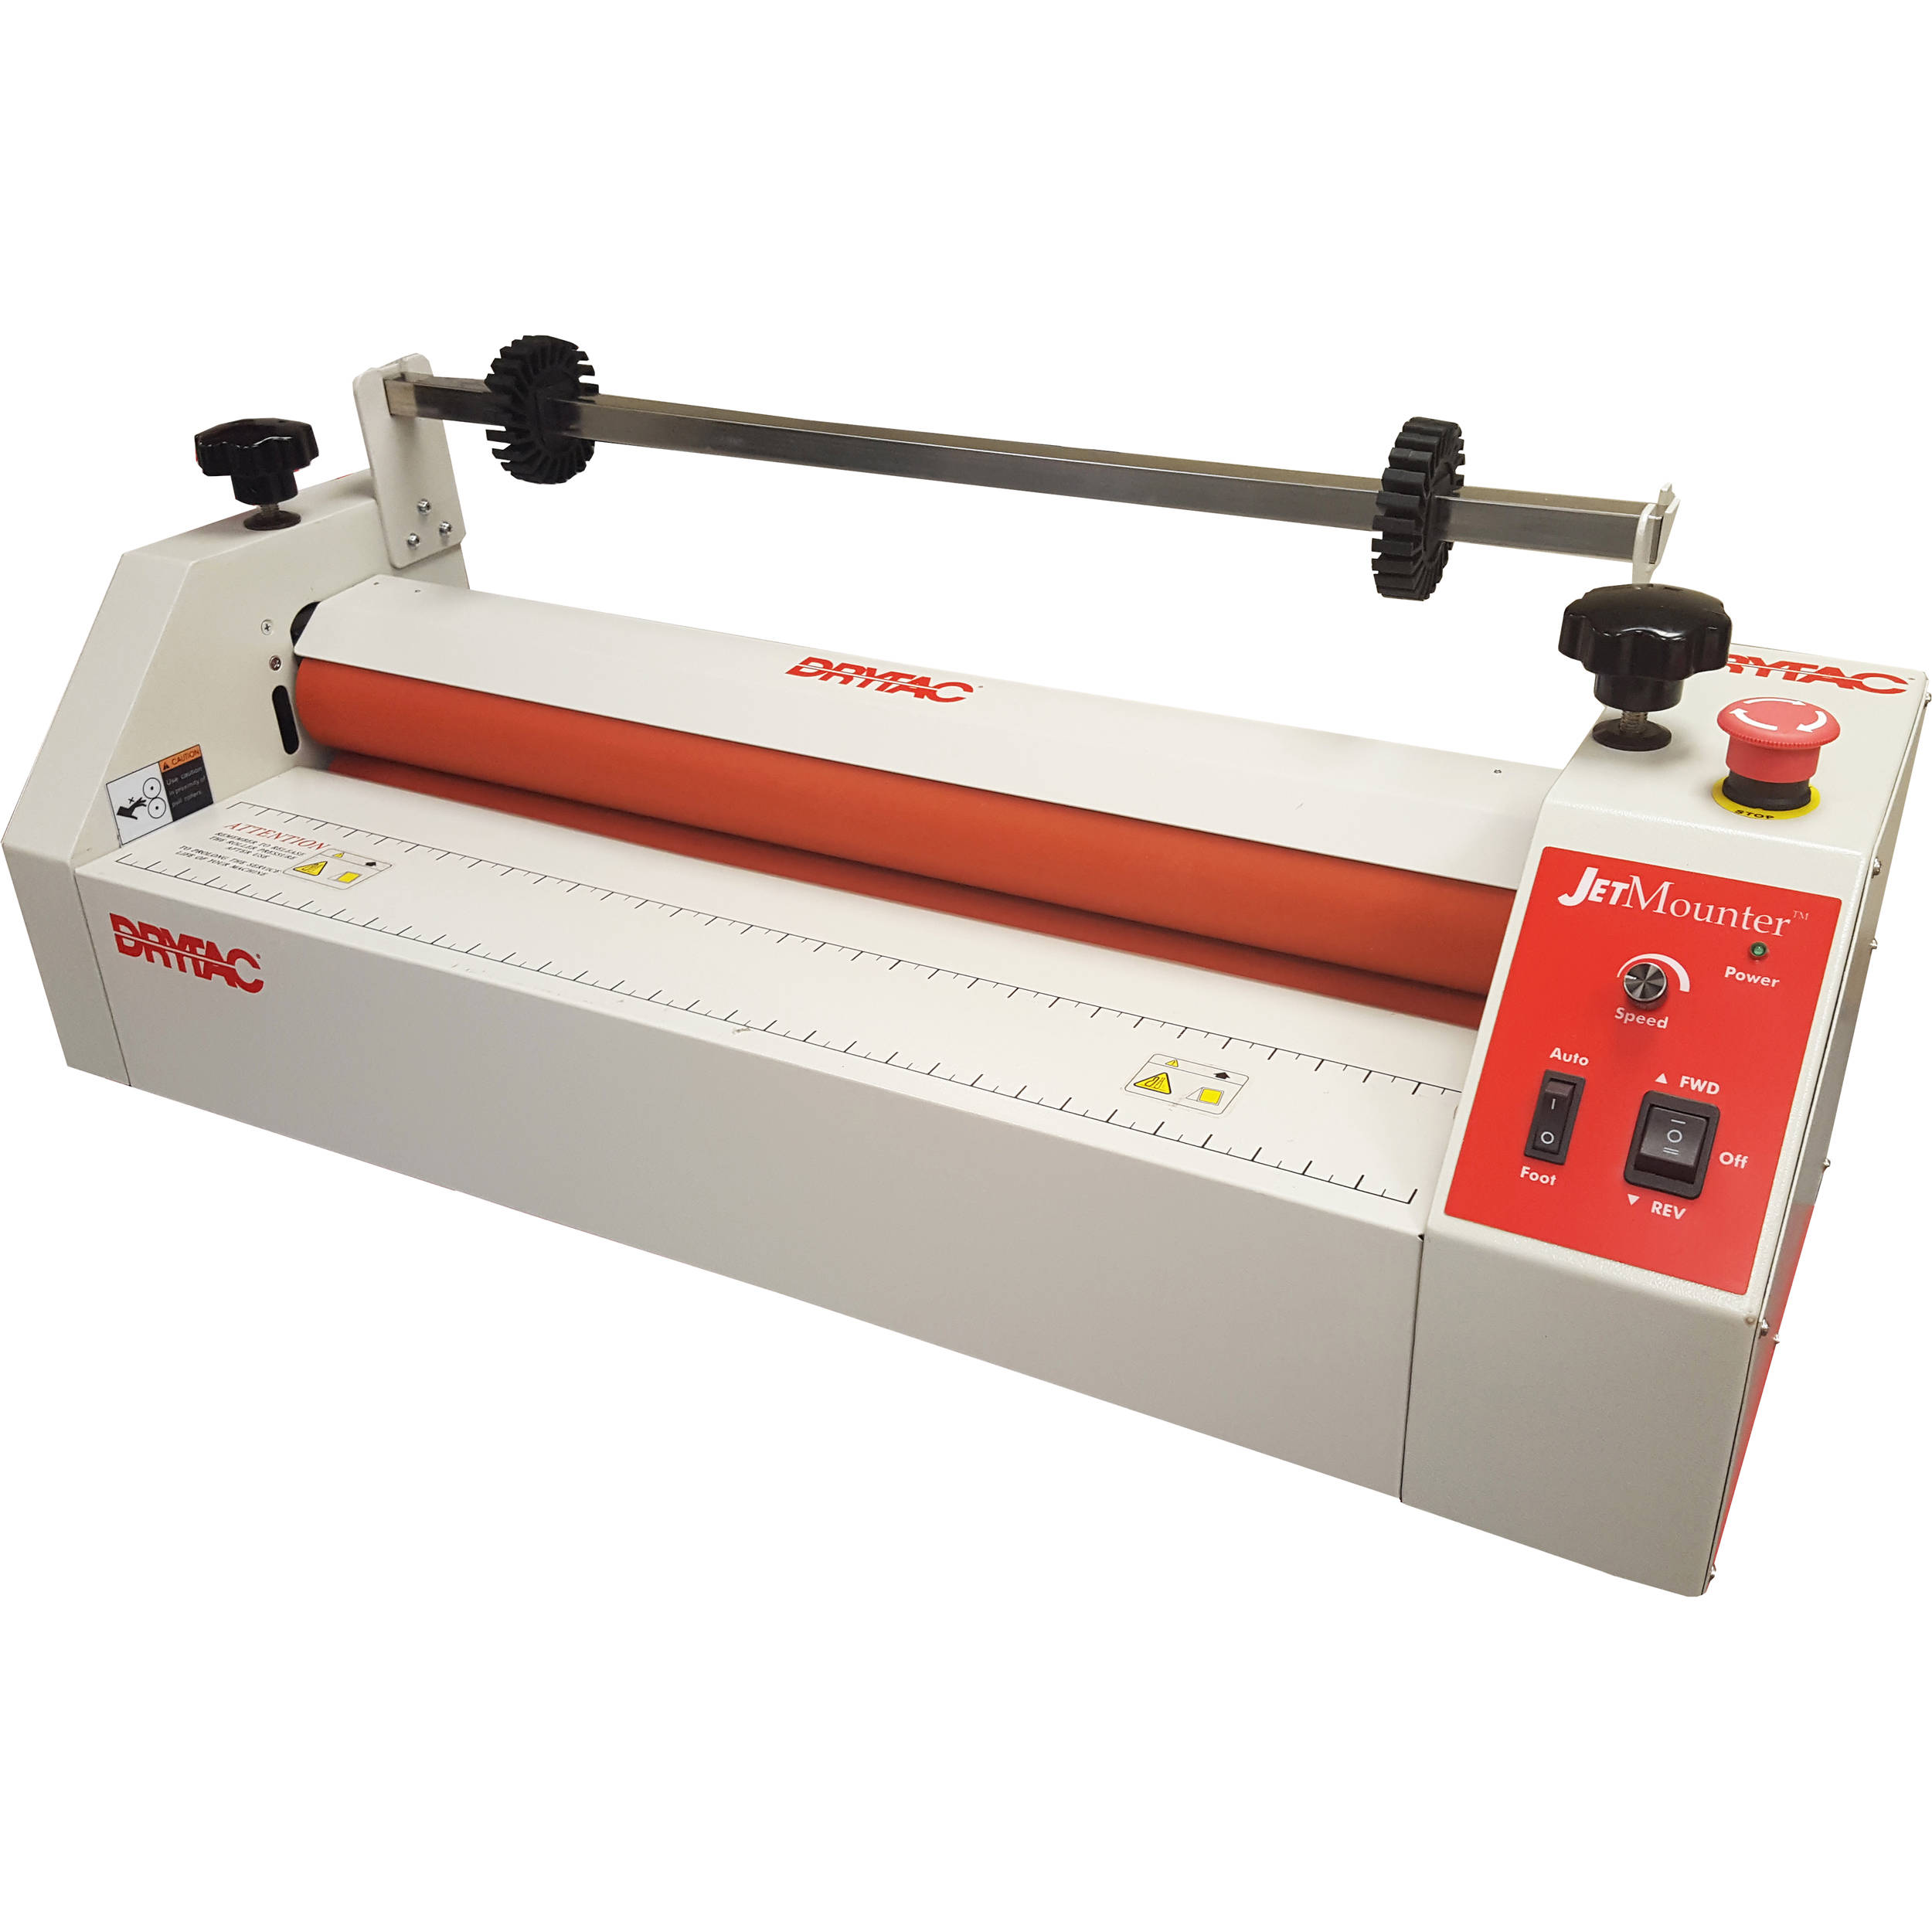 What You Need To Know About A Laminating Machine?